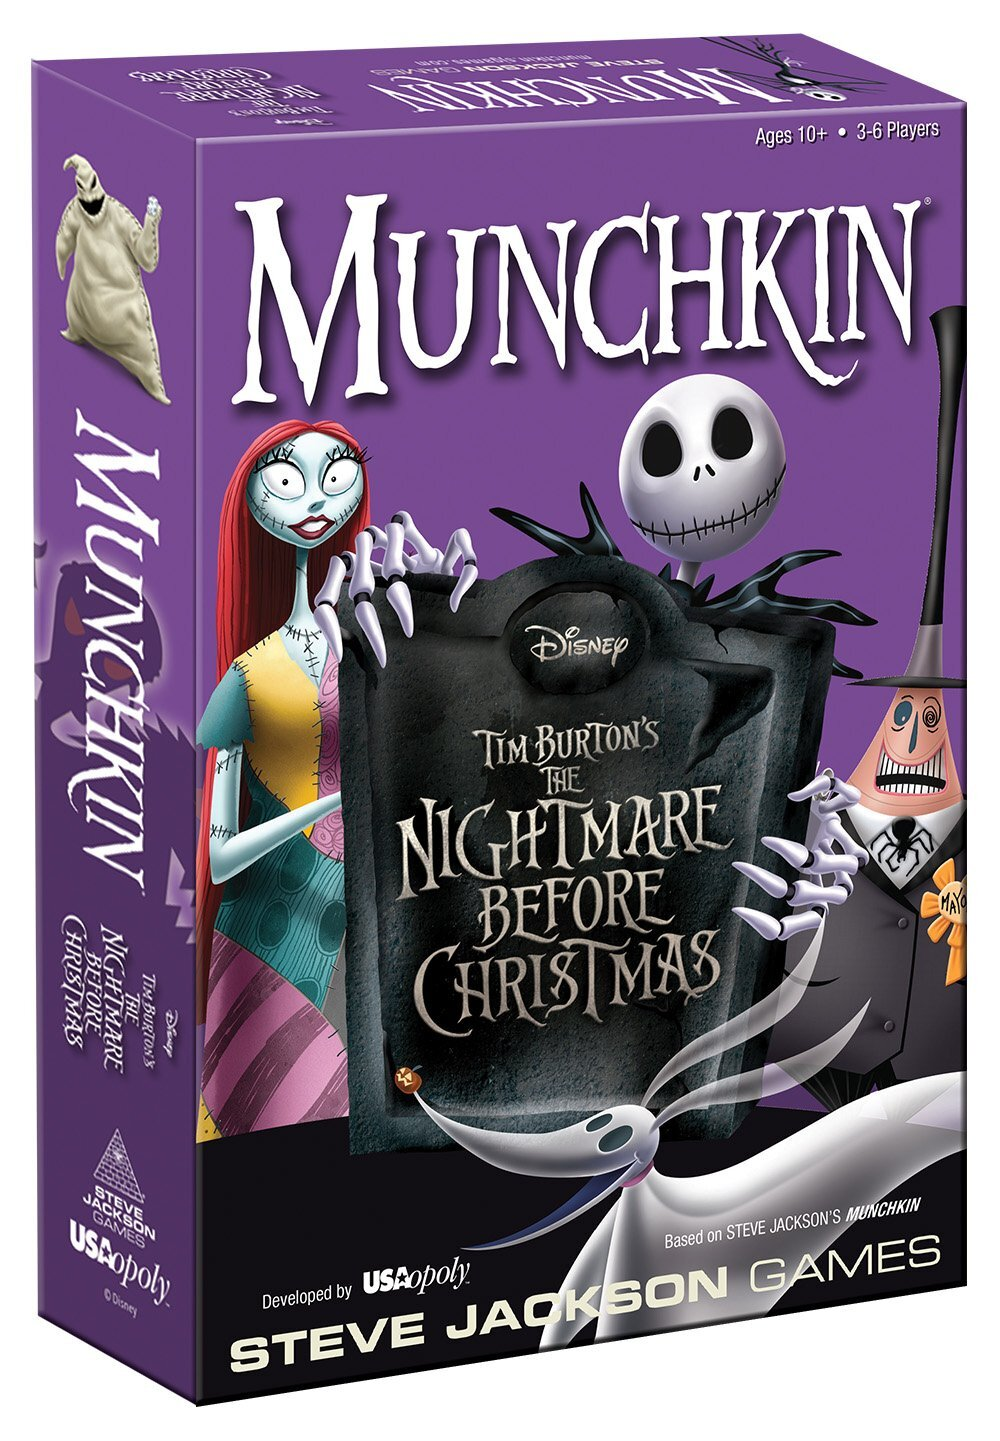 The Best Halloween Board Games for kids  - munchkin nightmare before christmas.jpg